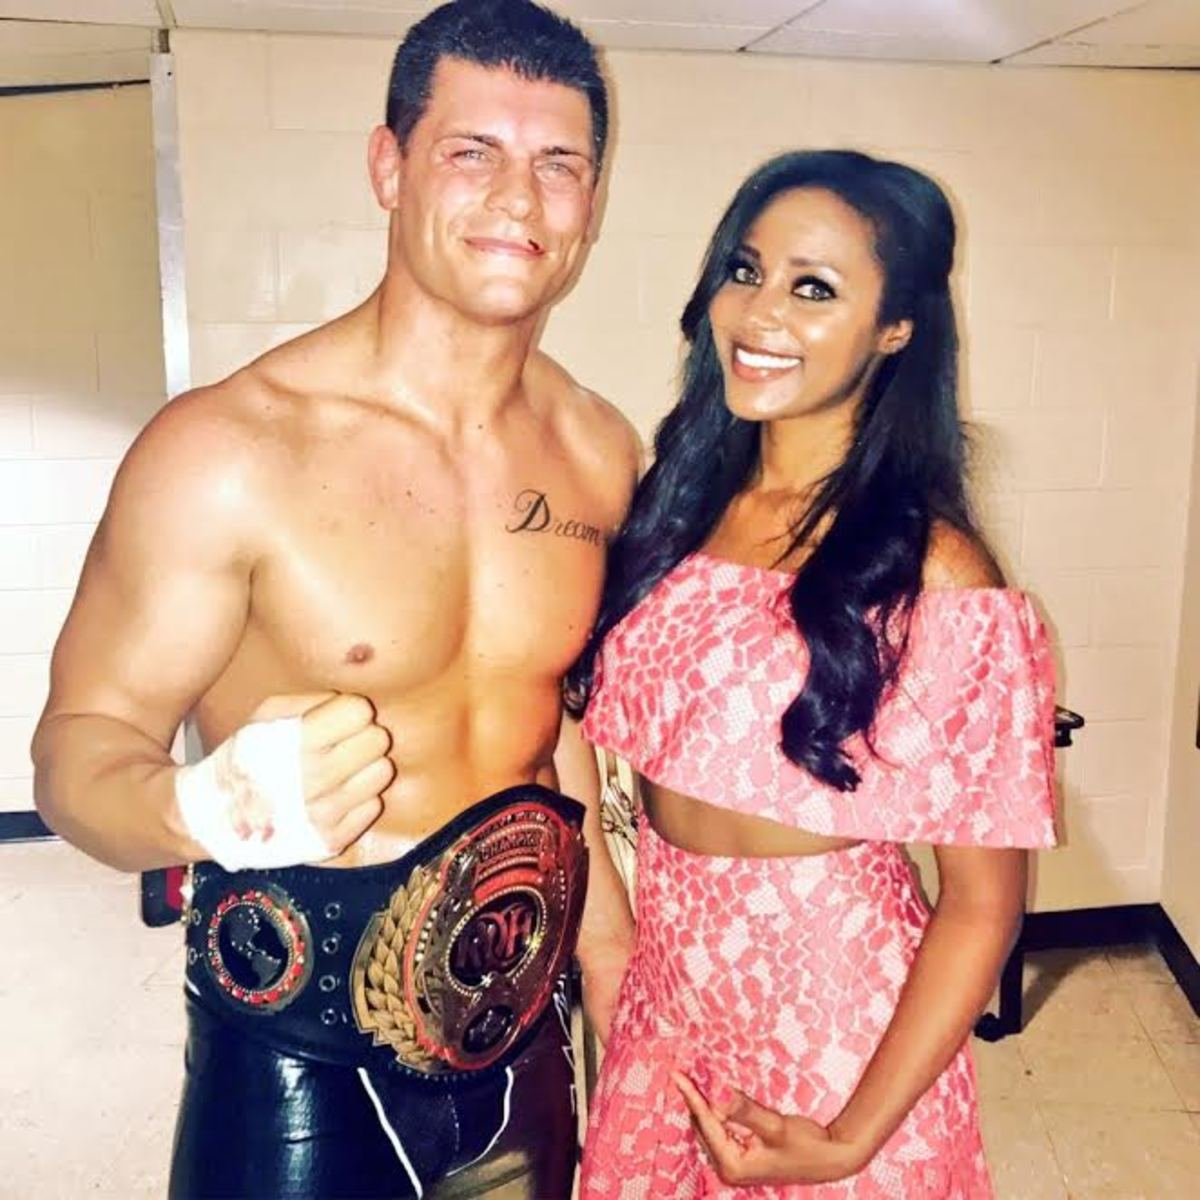 Cody & Brandi Celebrate The Big Win